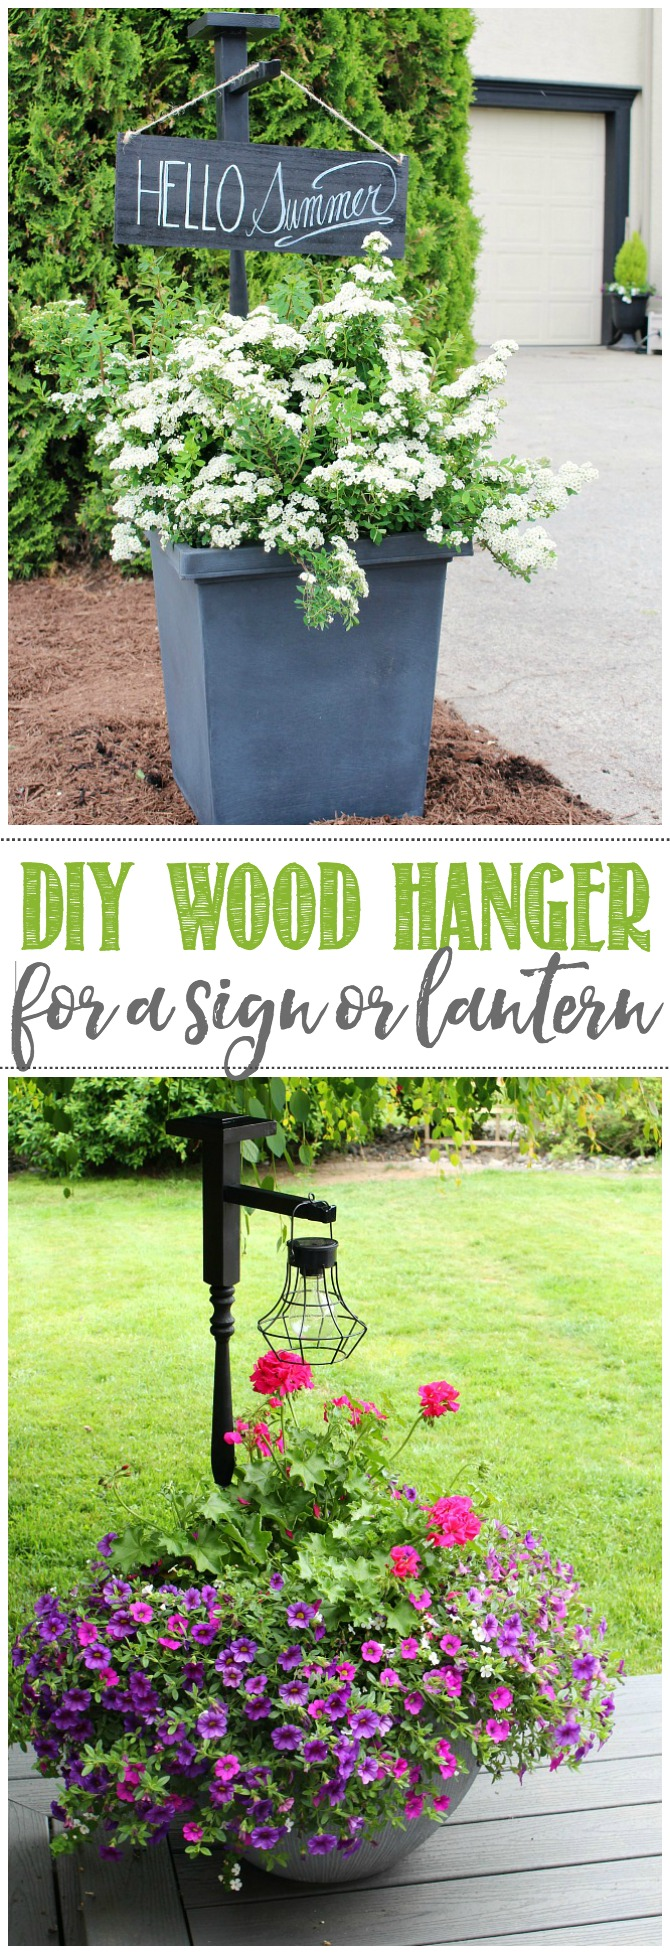 DIY wooden holder in a planter used to hang a wooden sign or hanging solar lantern.